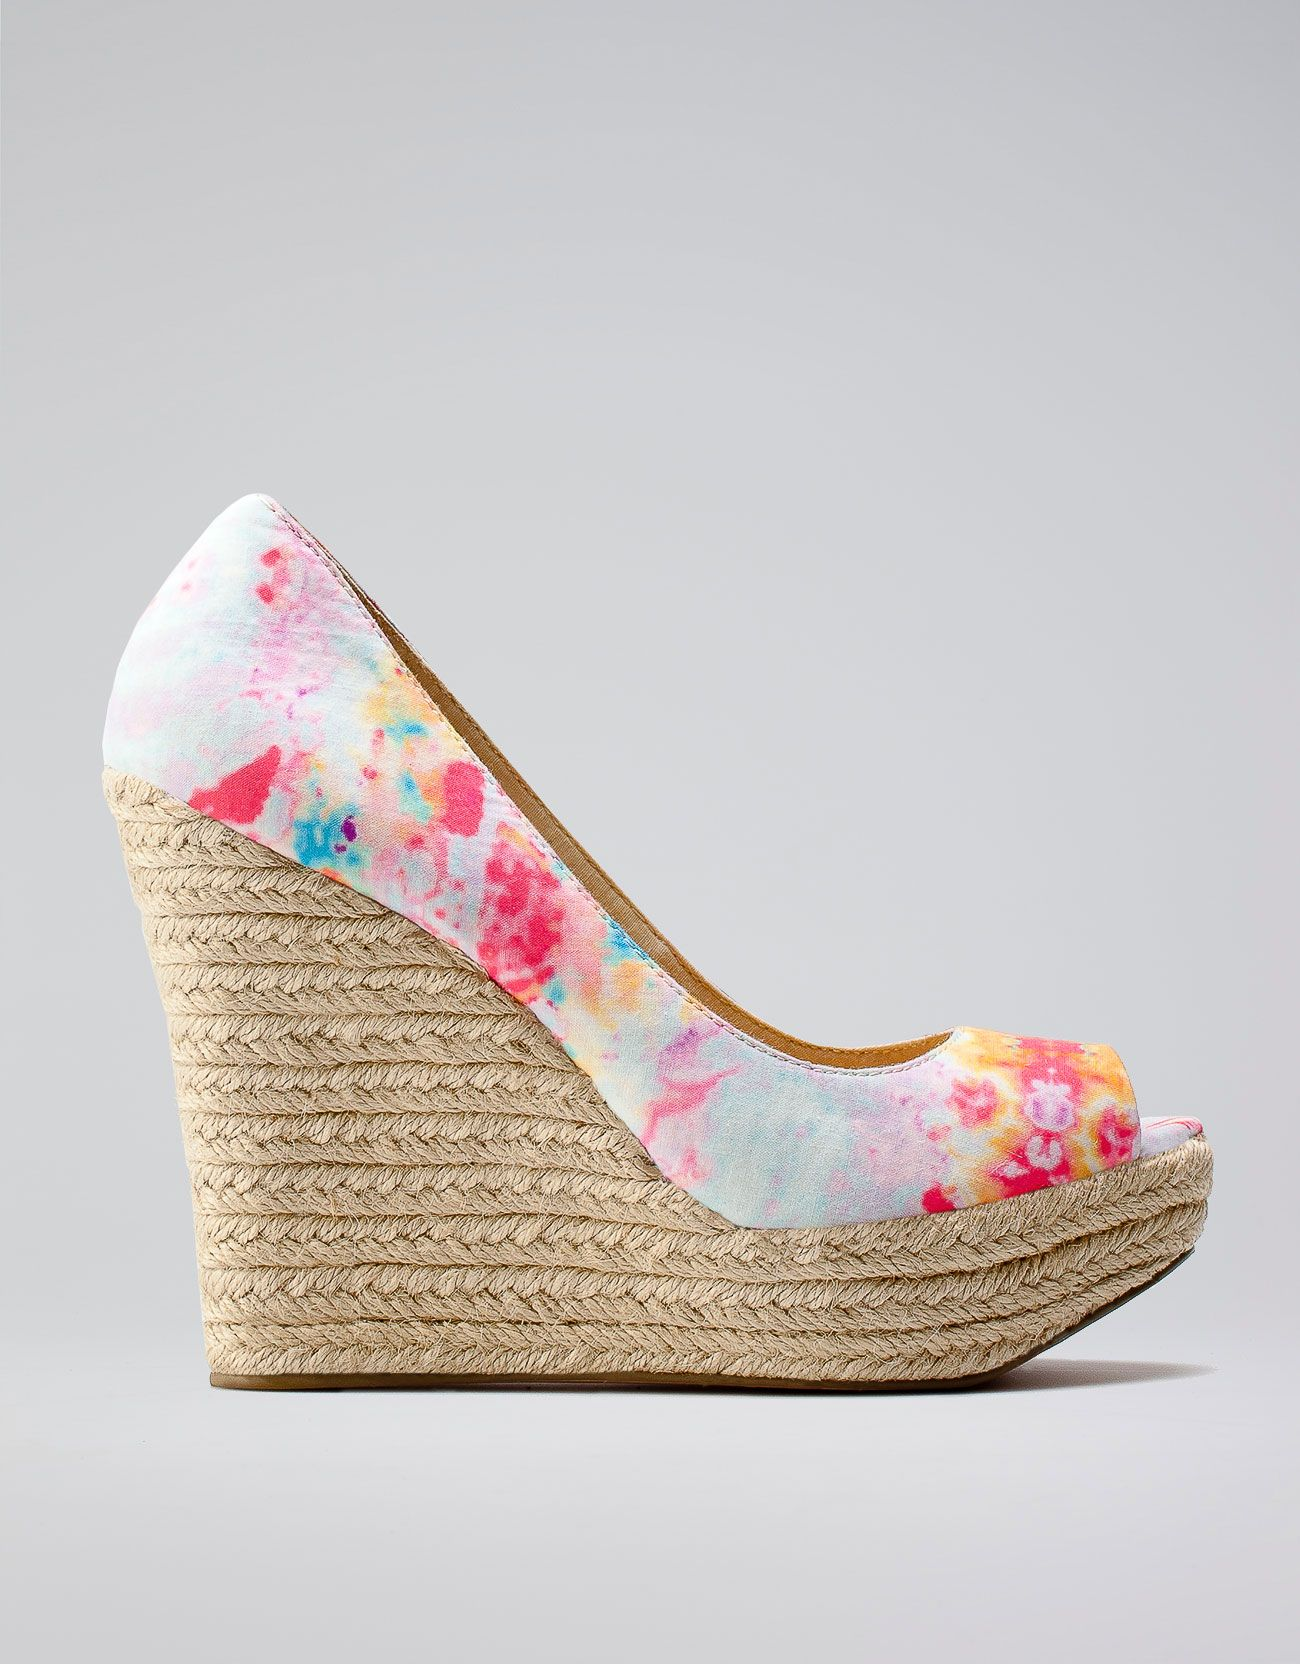 Bershka SpringSummer 2012 Shoes